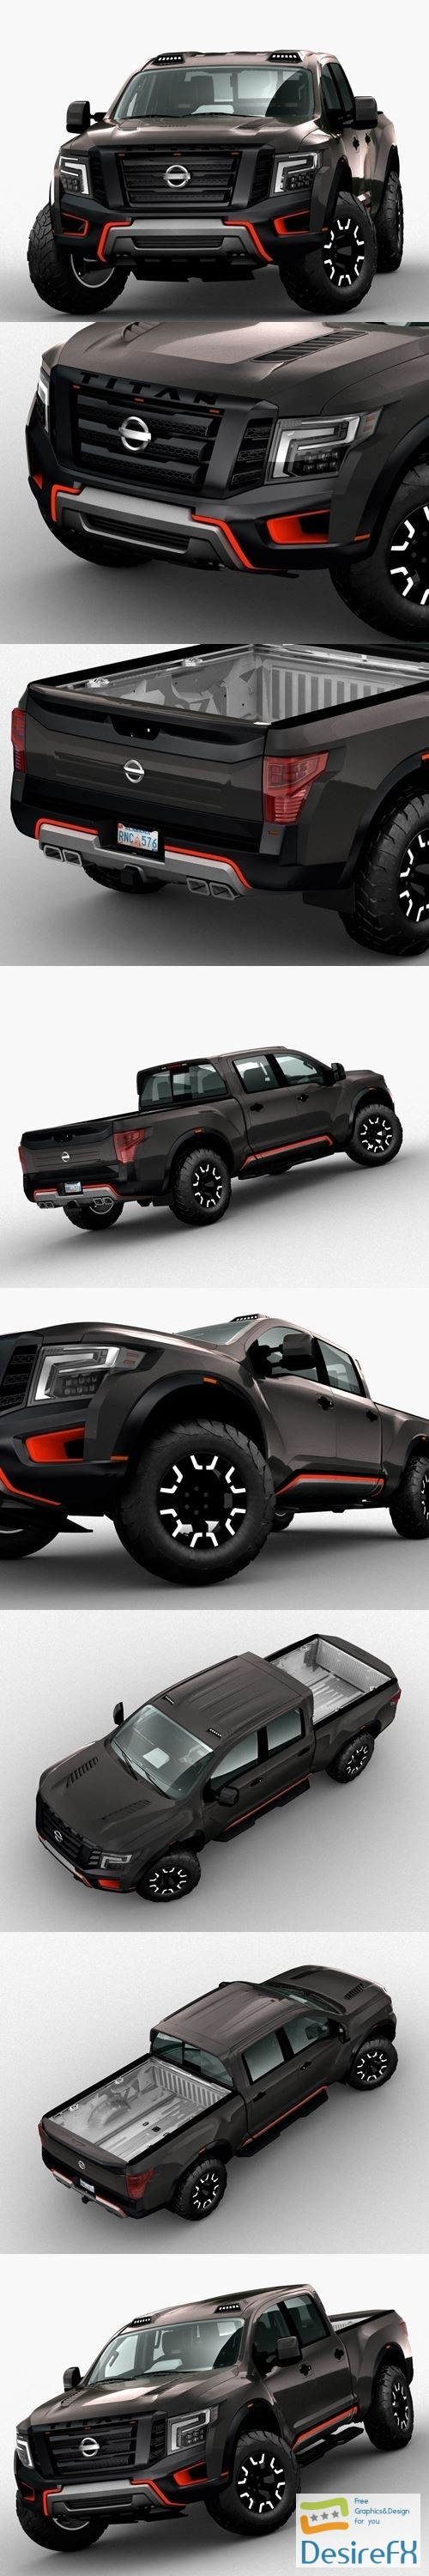 3d-models - Nissan Titan 2017 3D Model